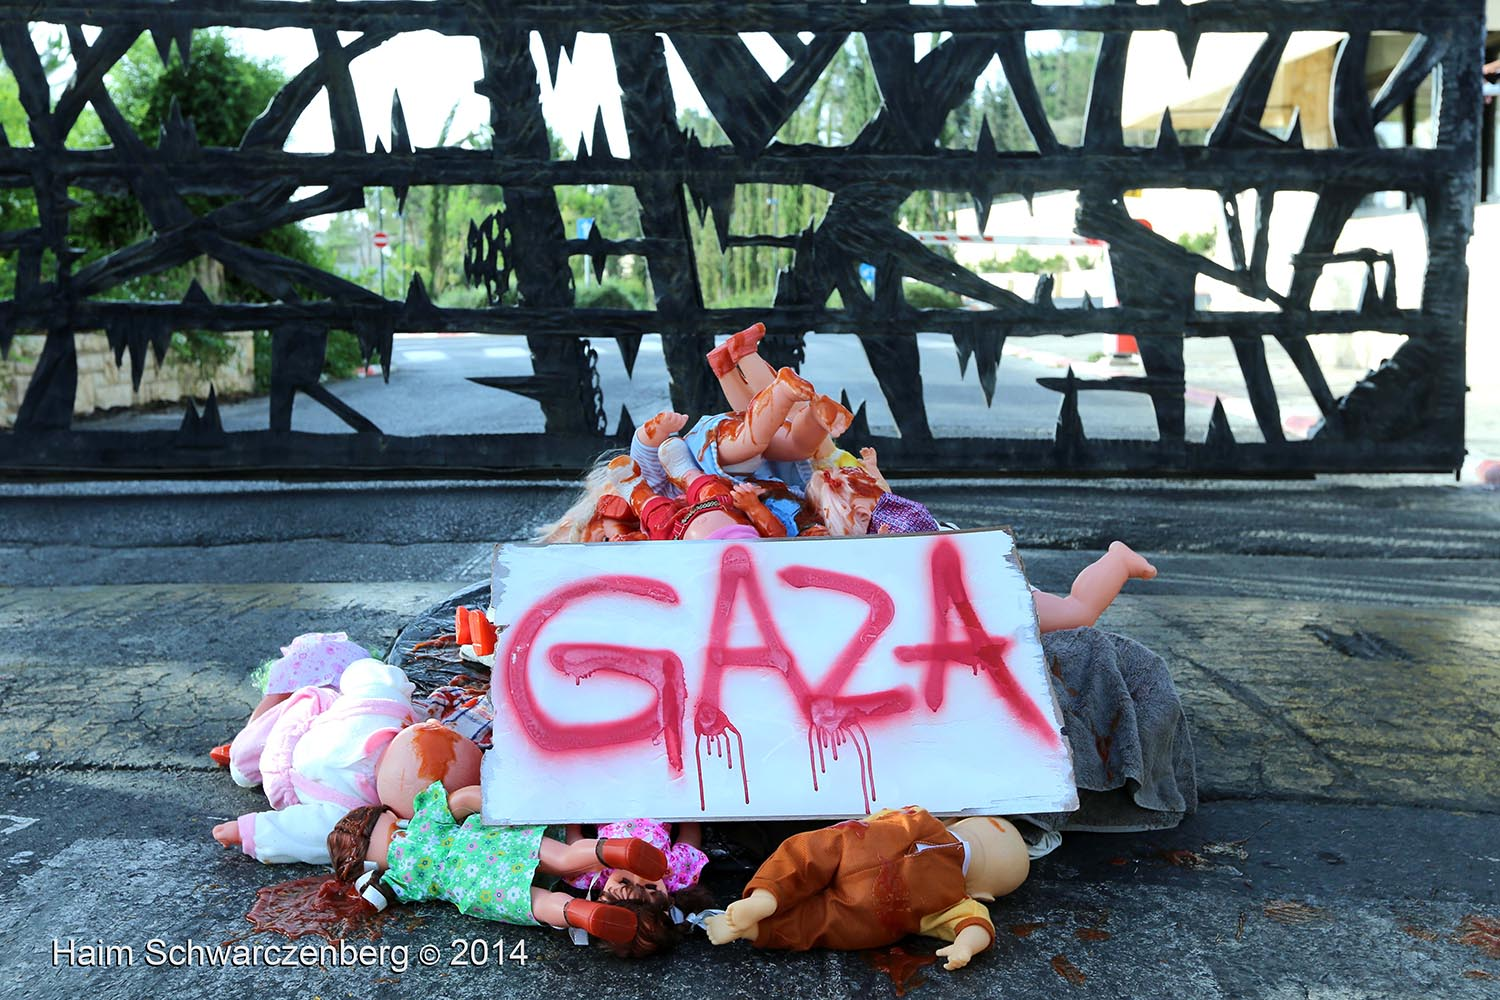 Direct Action against the Massacre in Gaza at Yad Vashem